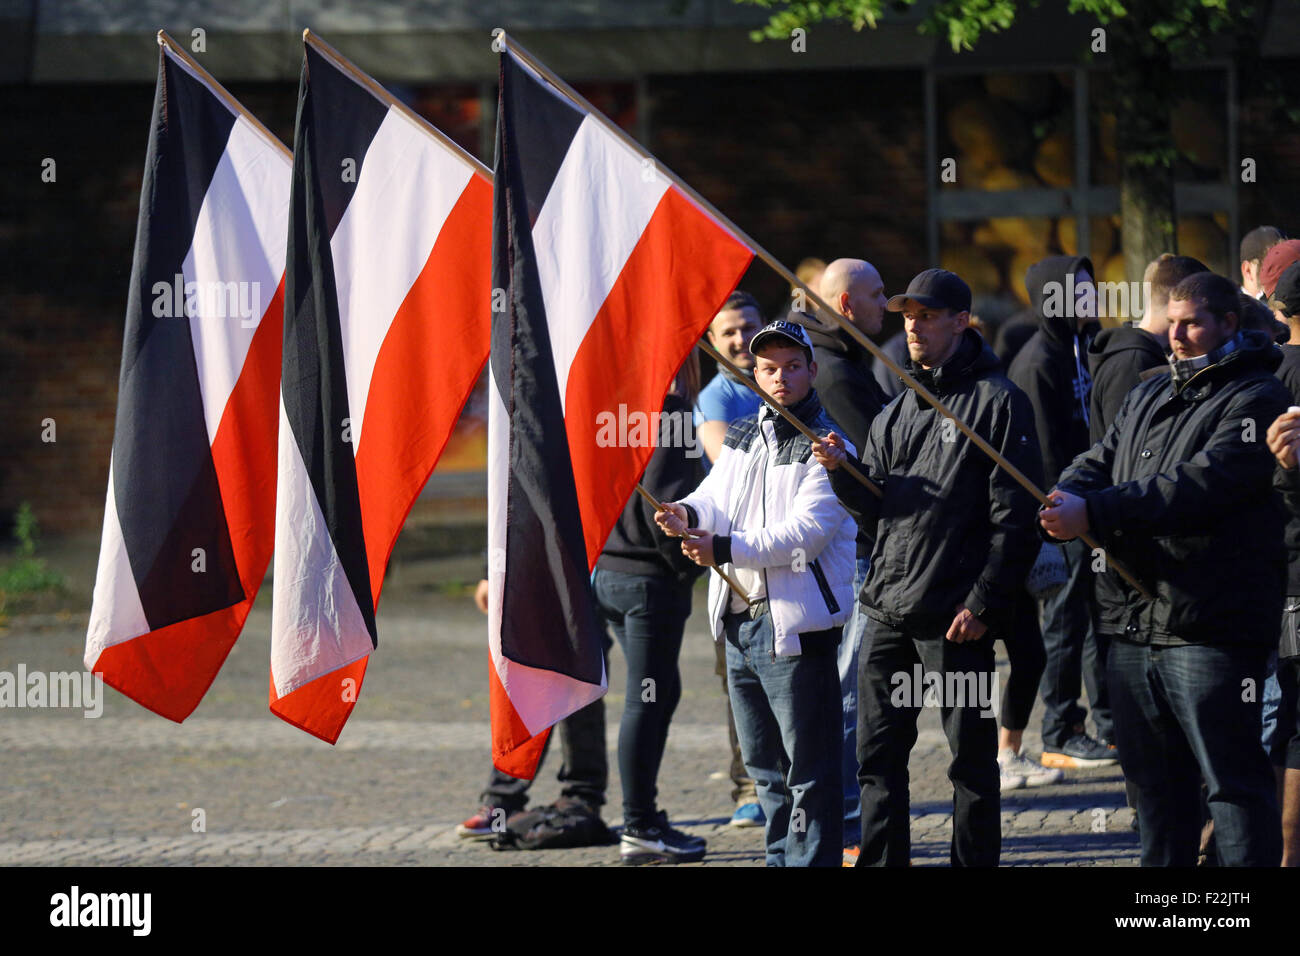 Supporters of the german far right neo-nazi party DIE RECHTE (the rights) waving the flag of the German Empire (Deutsches - Stock Image